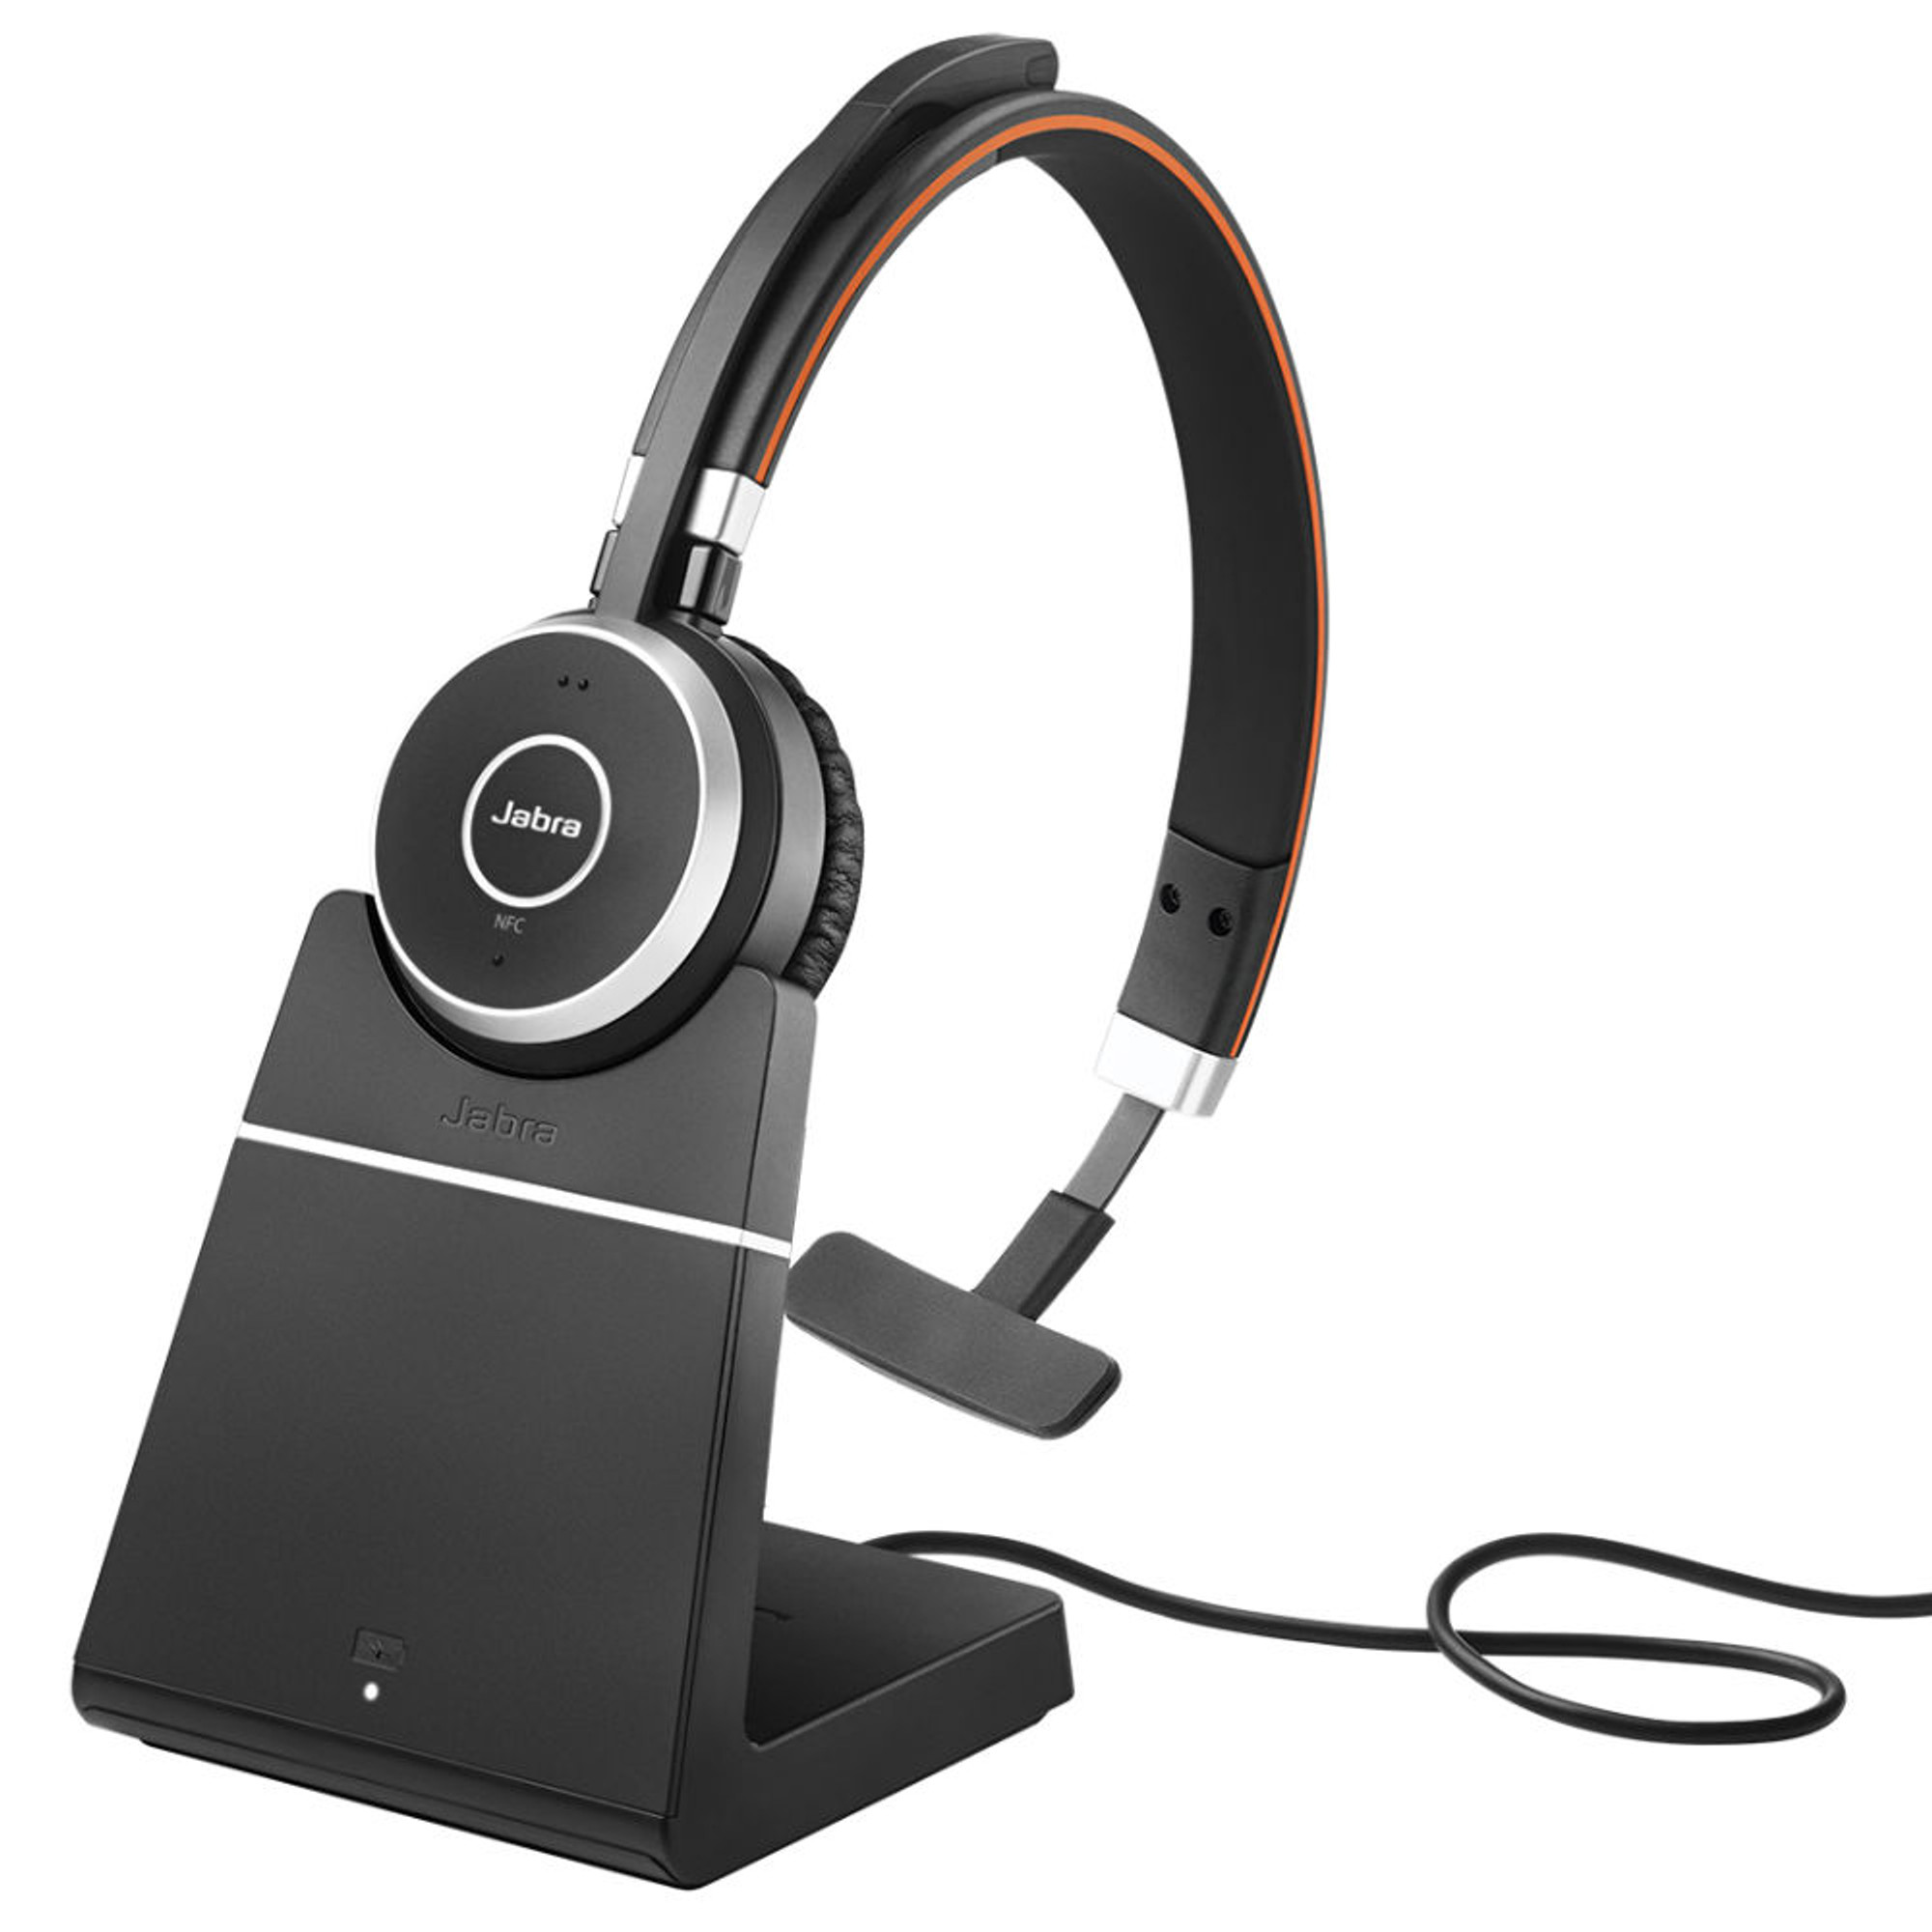 cc0d270606d Jabra Evolve 65+ UC Mono Wireless Headset With Charging Stand & USB Adapter  ...